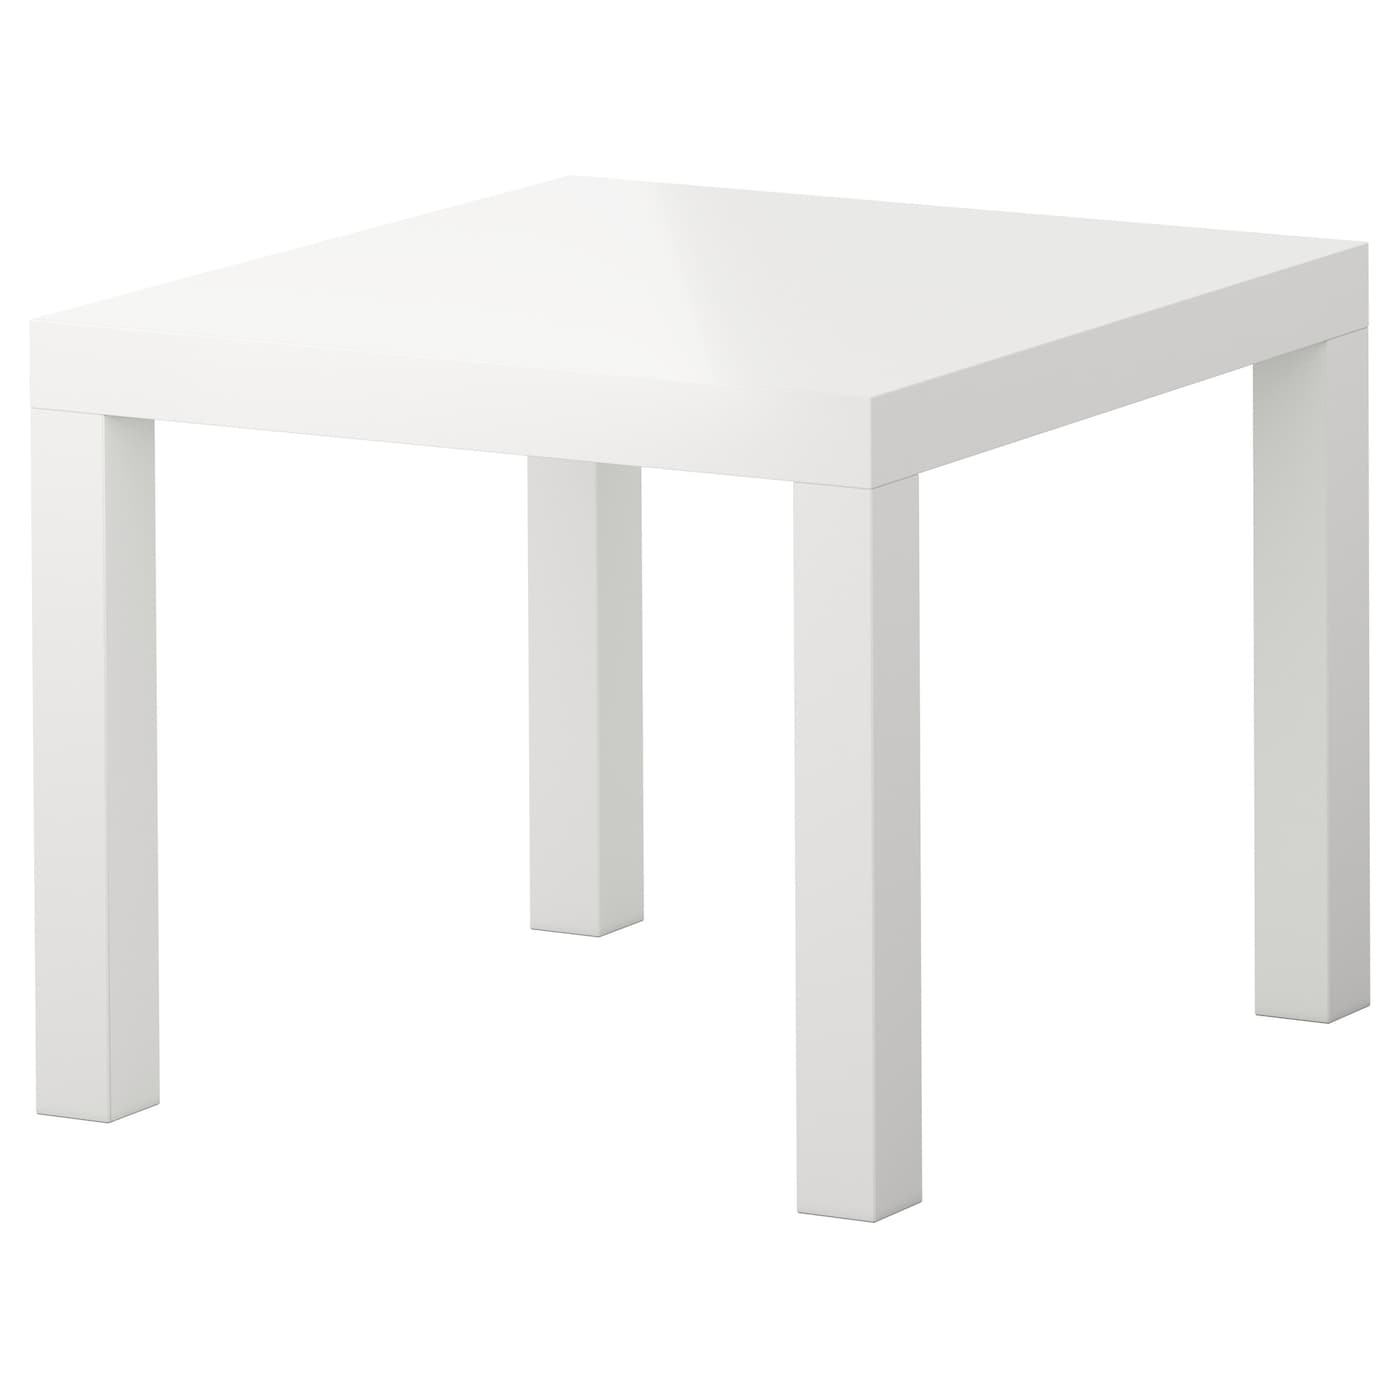 lack side table high gloss white 55 x 55 cm ikea. Black Bedroom Furniture Sets. Home Design Ideas